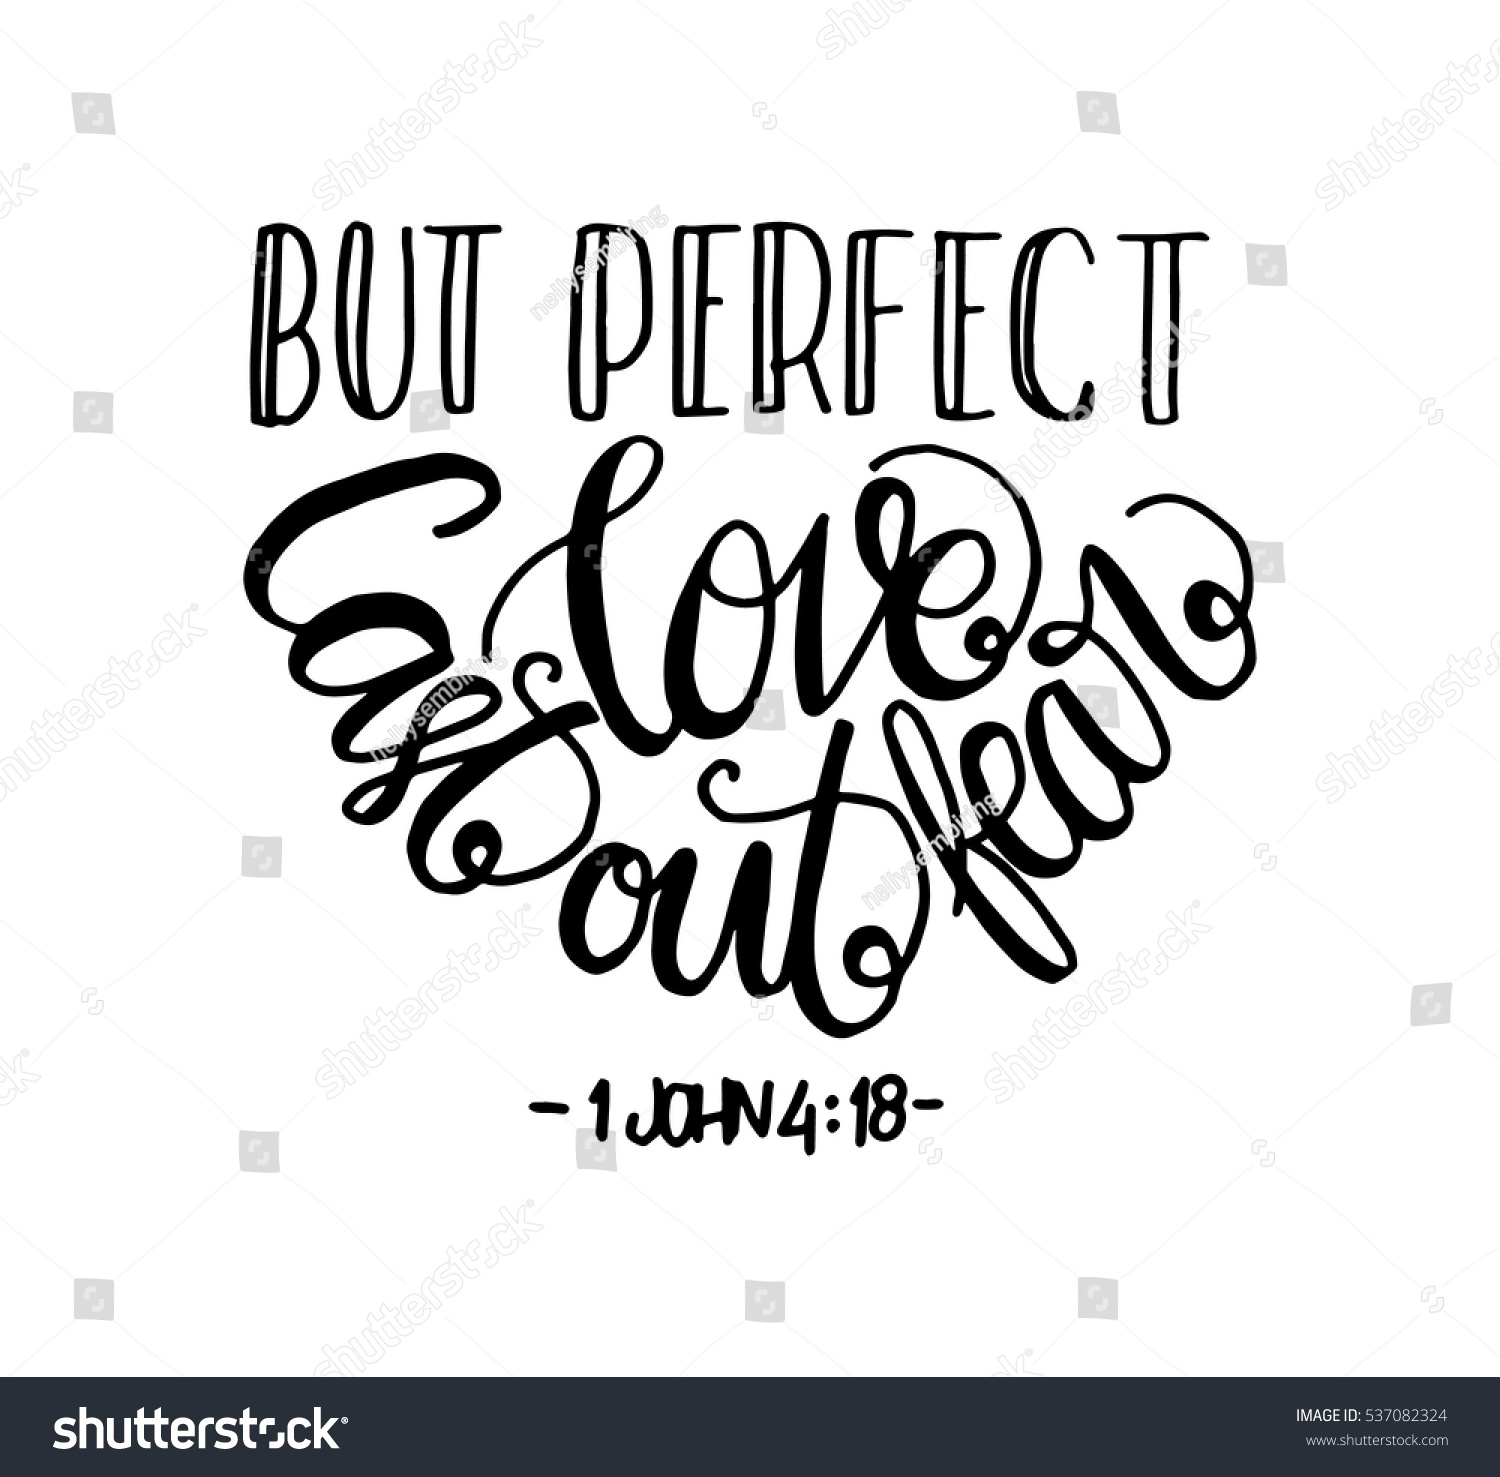 But Perfect Love Cast Out Fear. Bible Verse. Hand Lettered Quote. Modern  Calligraphy